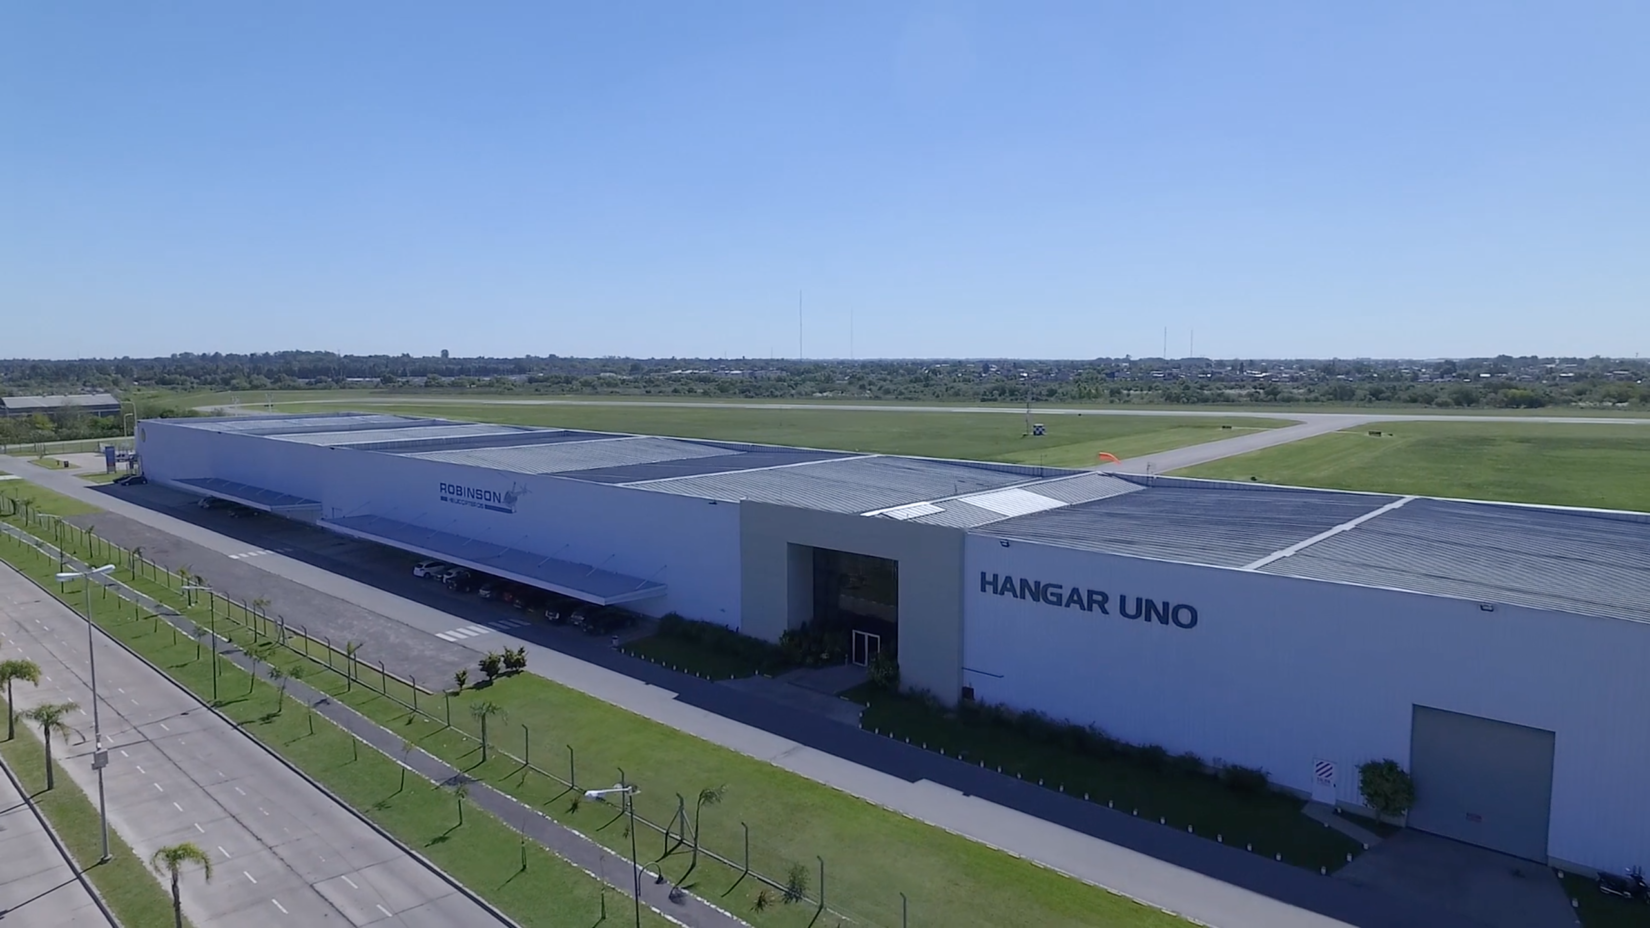 Ariel view of the Hangar Uno facility